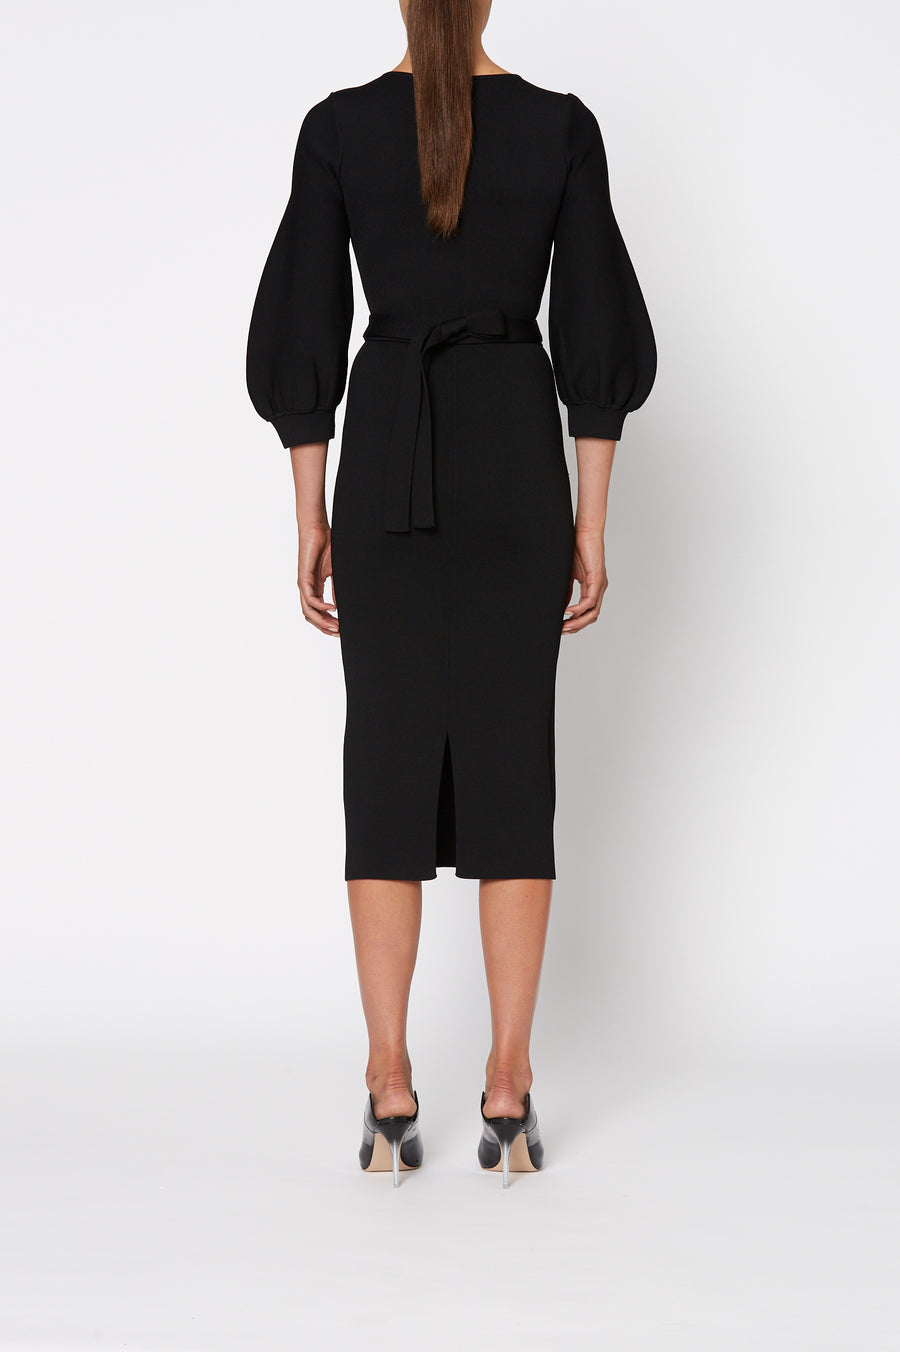 Crepe Knit Cocoon Sleeve Dress, tailored V neck, cocoon sleeves, waist belt and pencil skirt to below the knee. Separate belt in same fabric is inc. Color Black